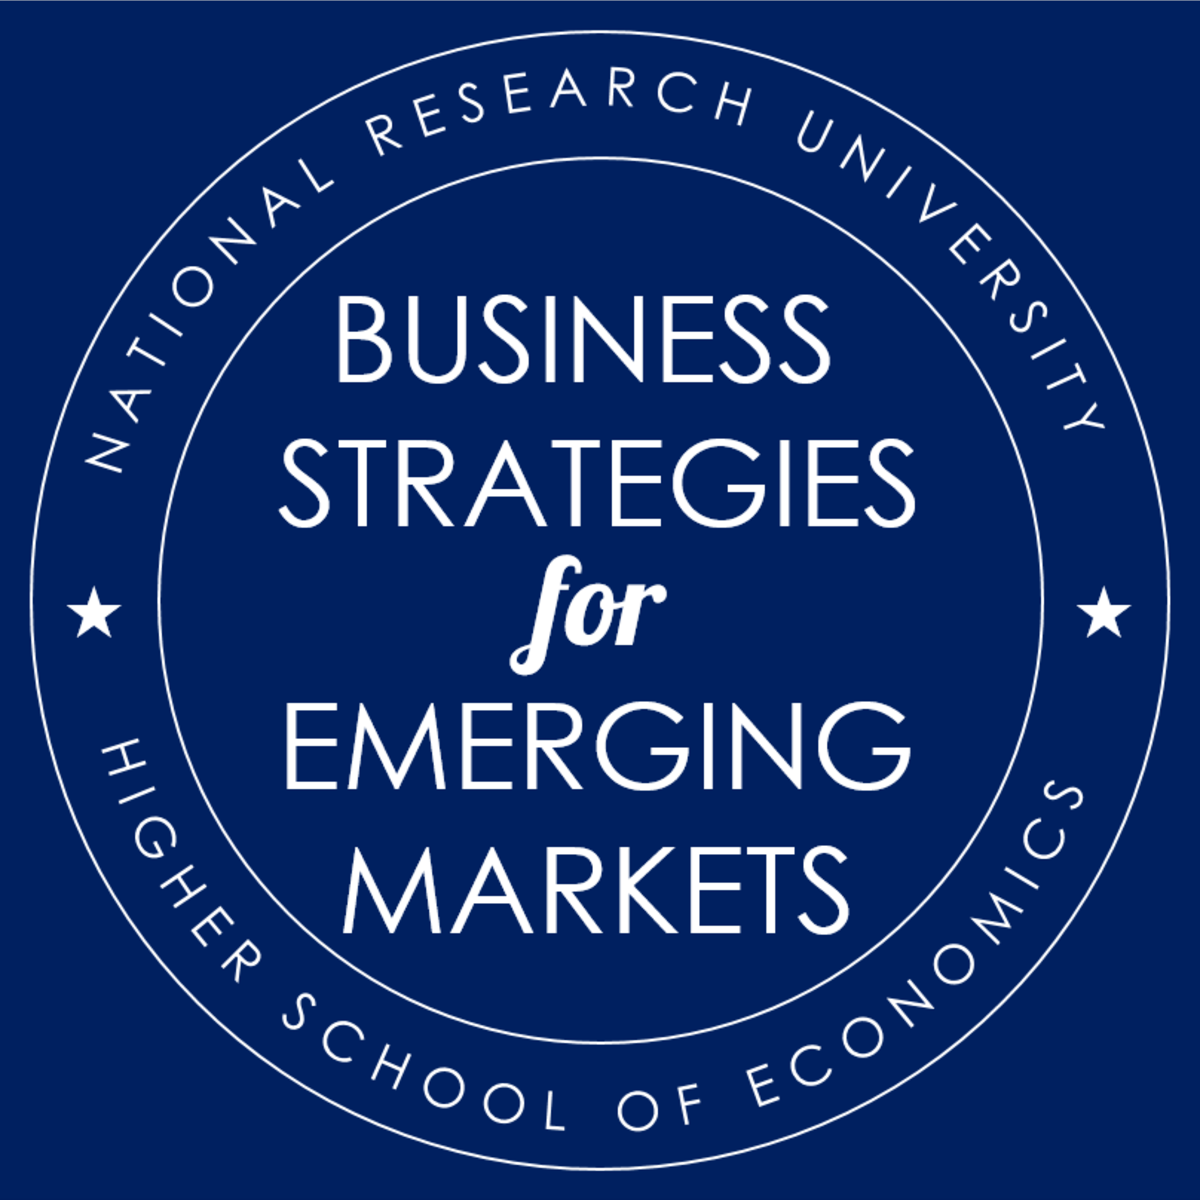 Business Strategies for Emerging Markets course image